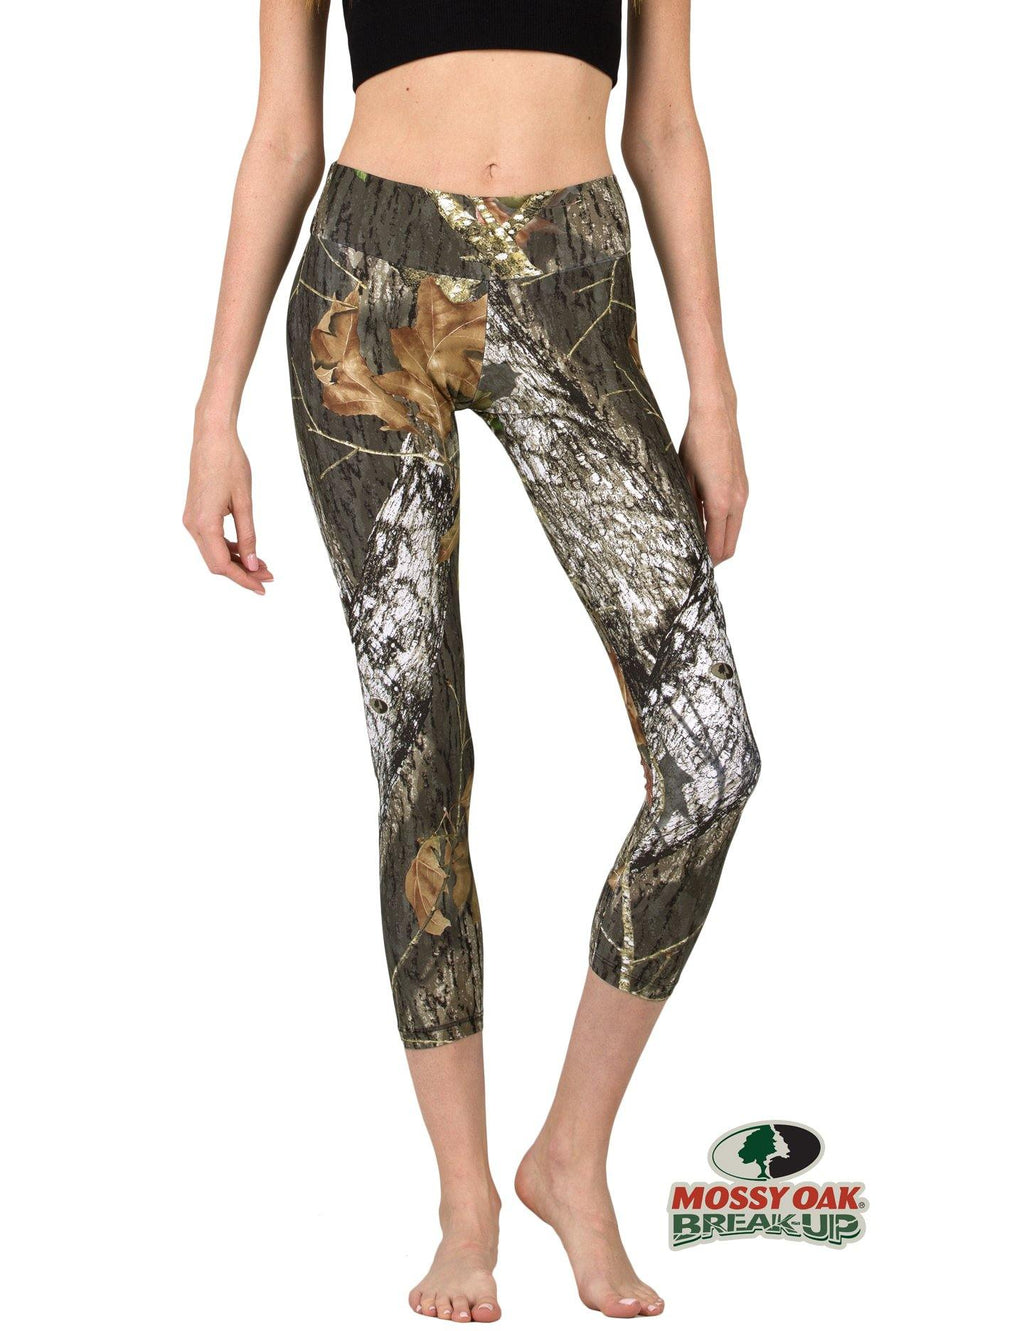 Apsara Leggings Low Waist Cropped, Mossy Oak Break-Up - Apsara Style